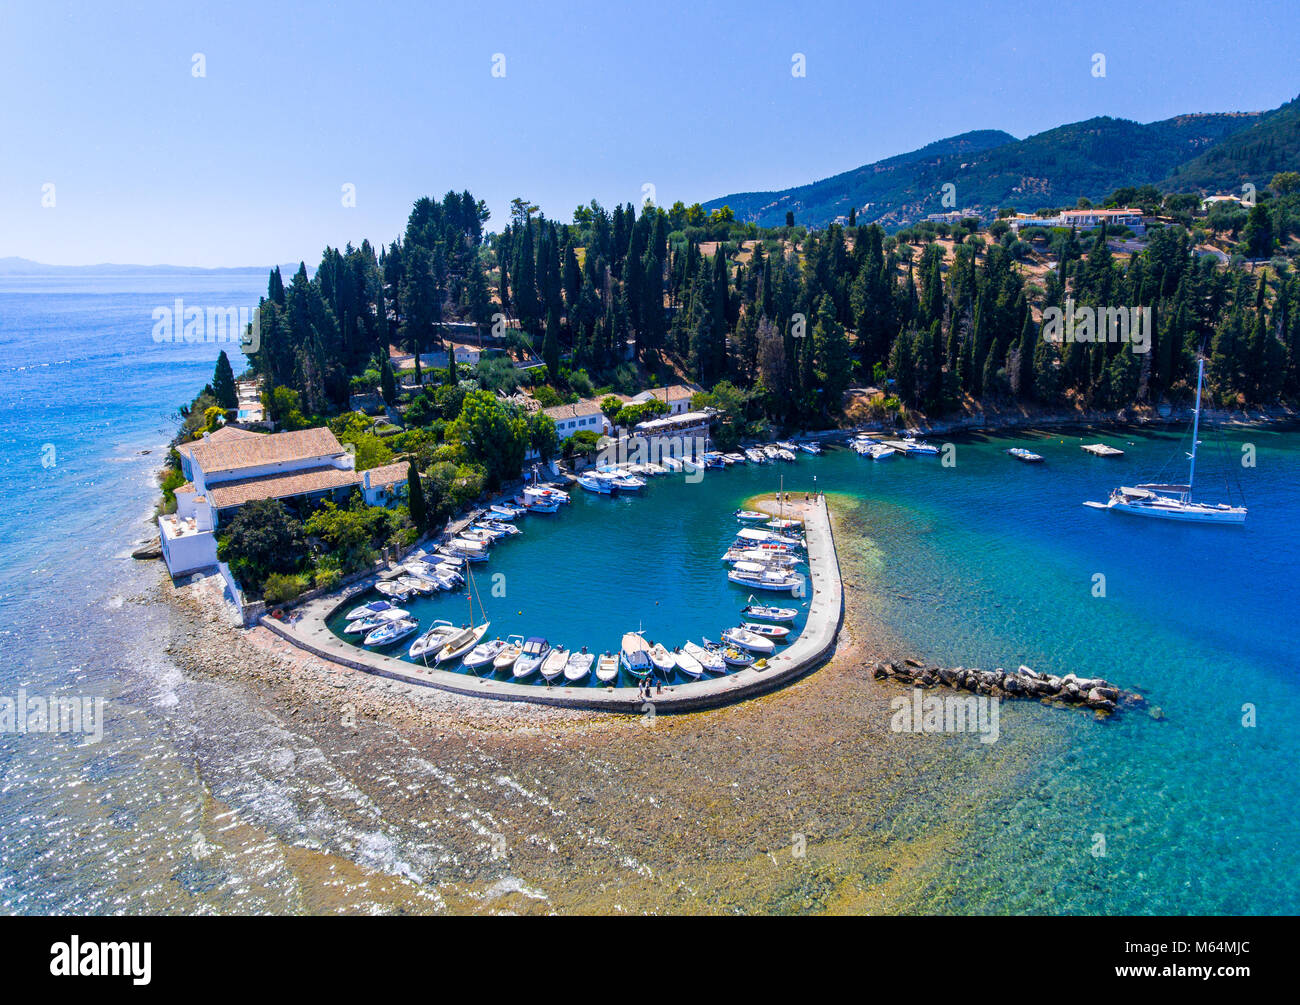 Kouloura old fishing village and beach. Corfu (Kerkyra) Island, Greece, Europe. Fishing boats and clear blue waters. Stock Photo